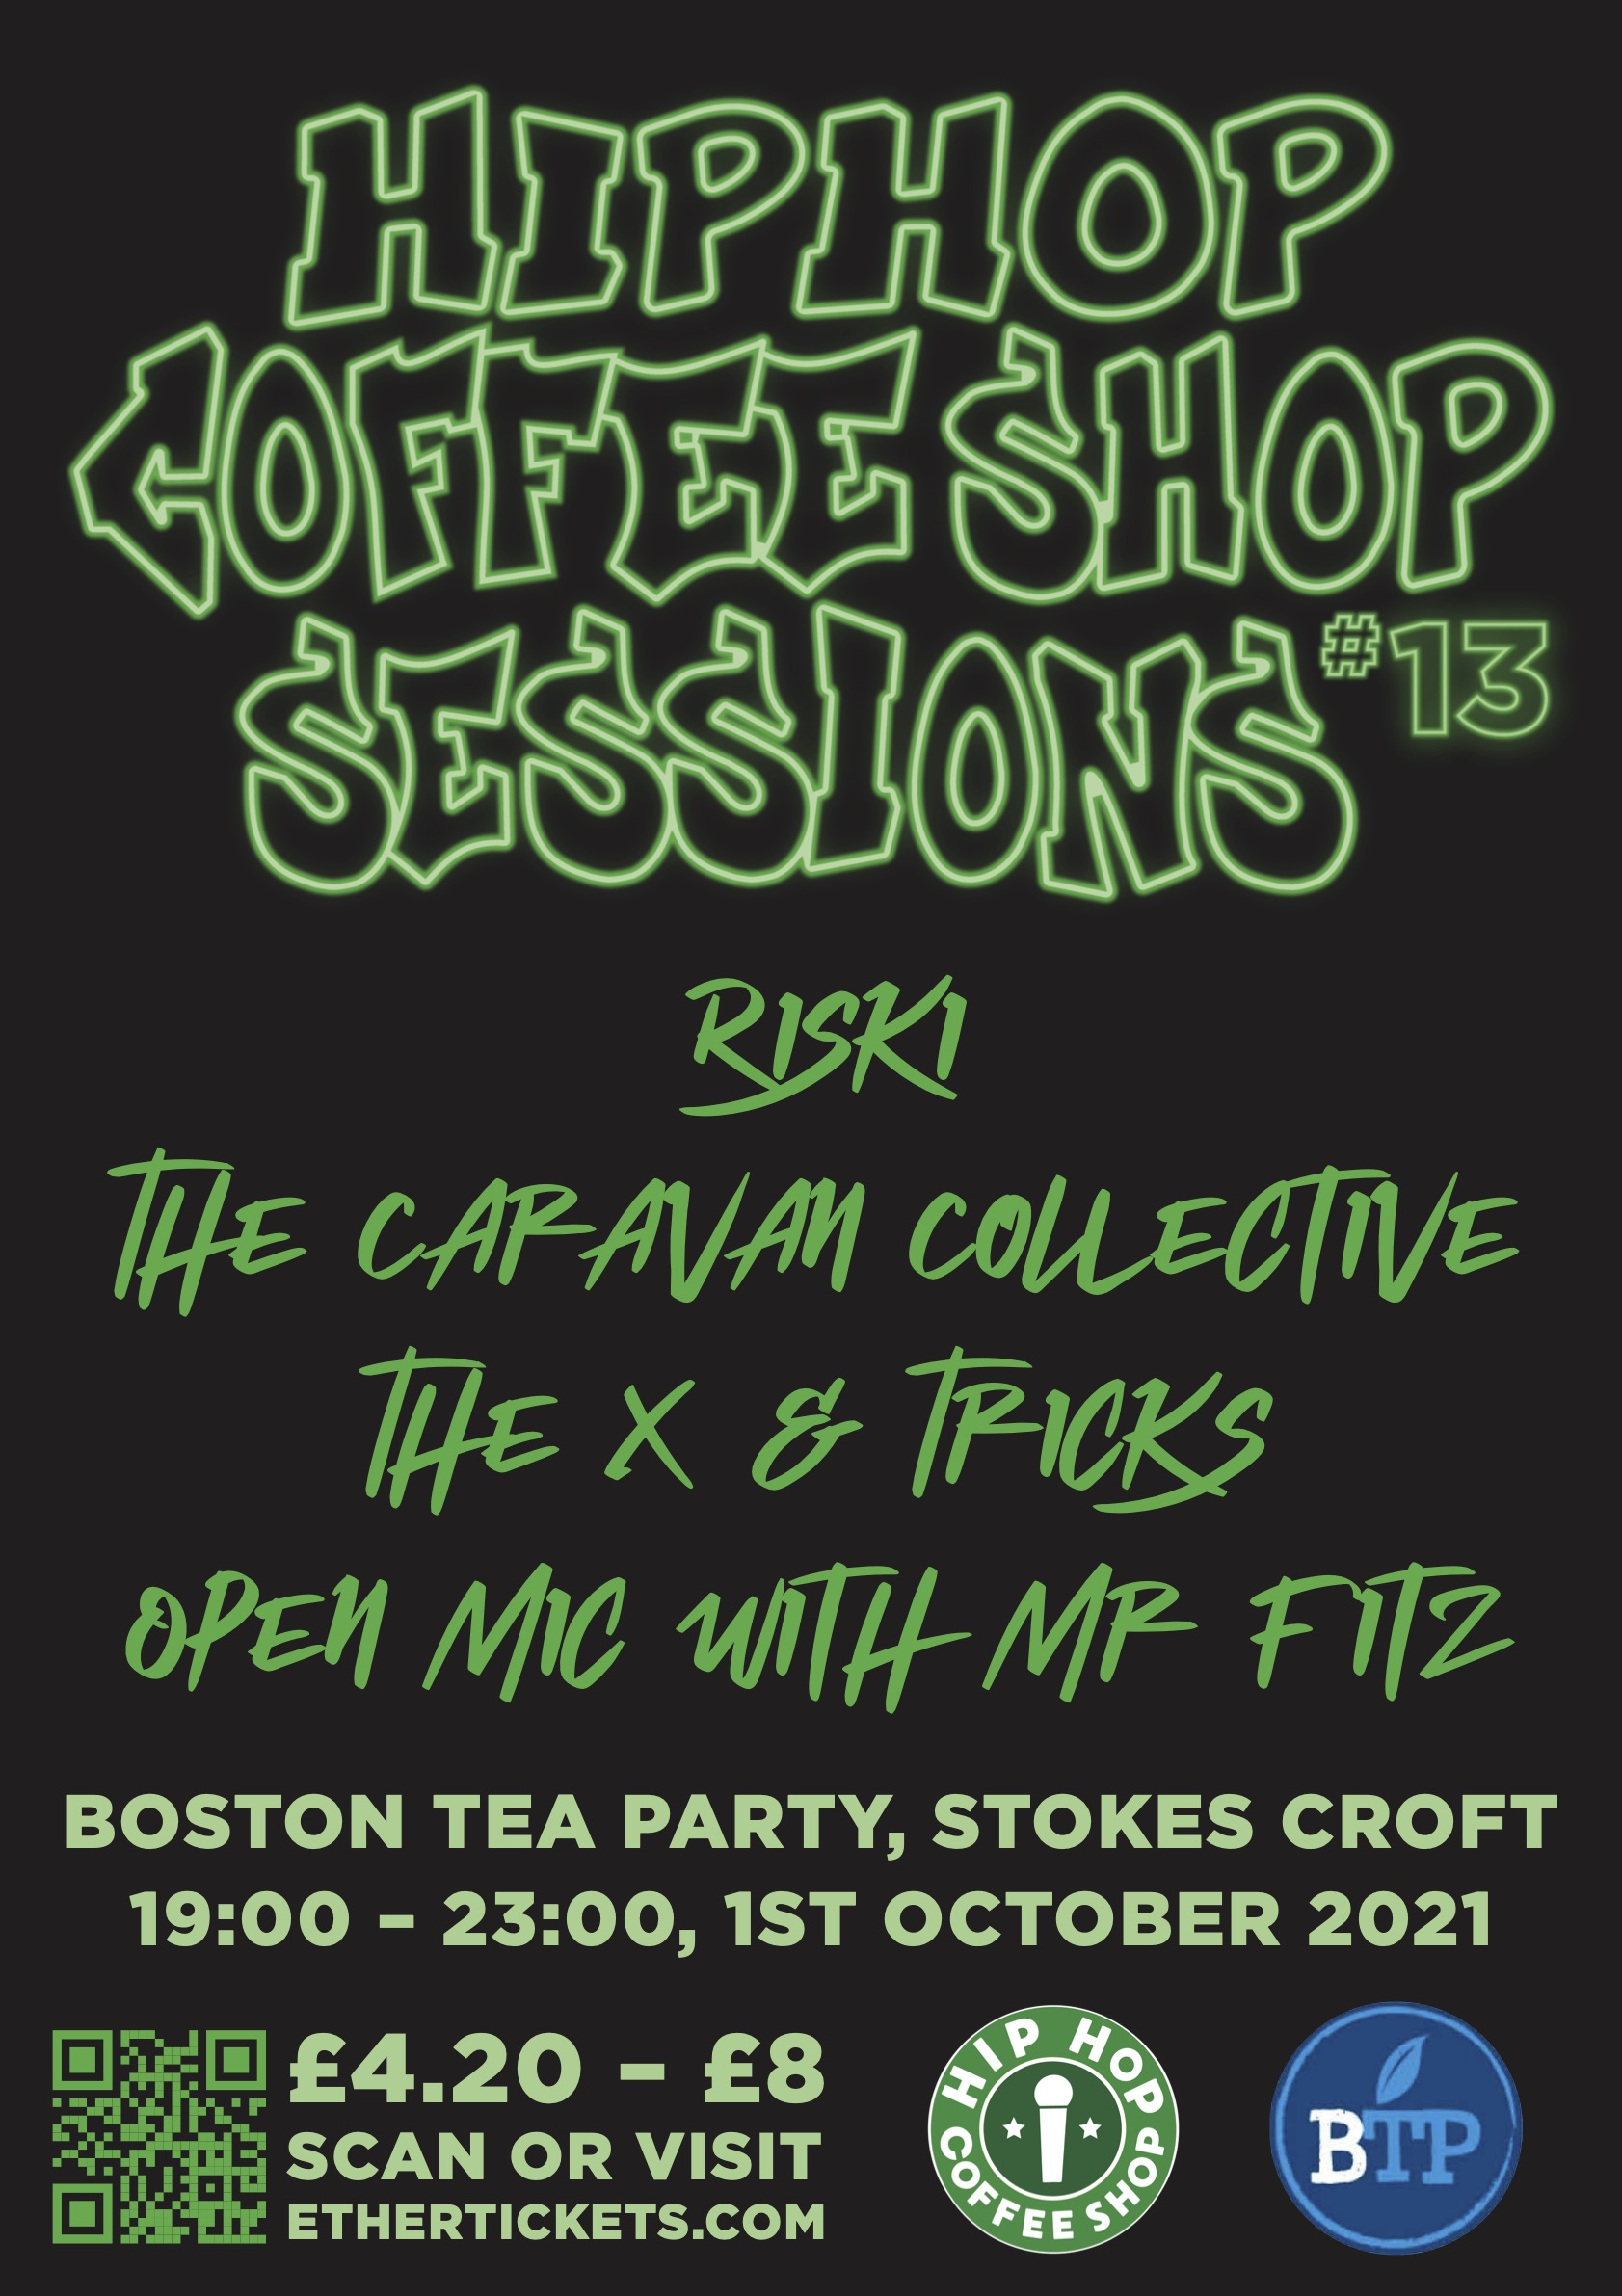 Event Poster For Hip Hop Coffee Shop Sessions #13